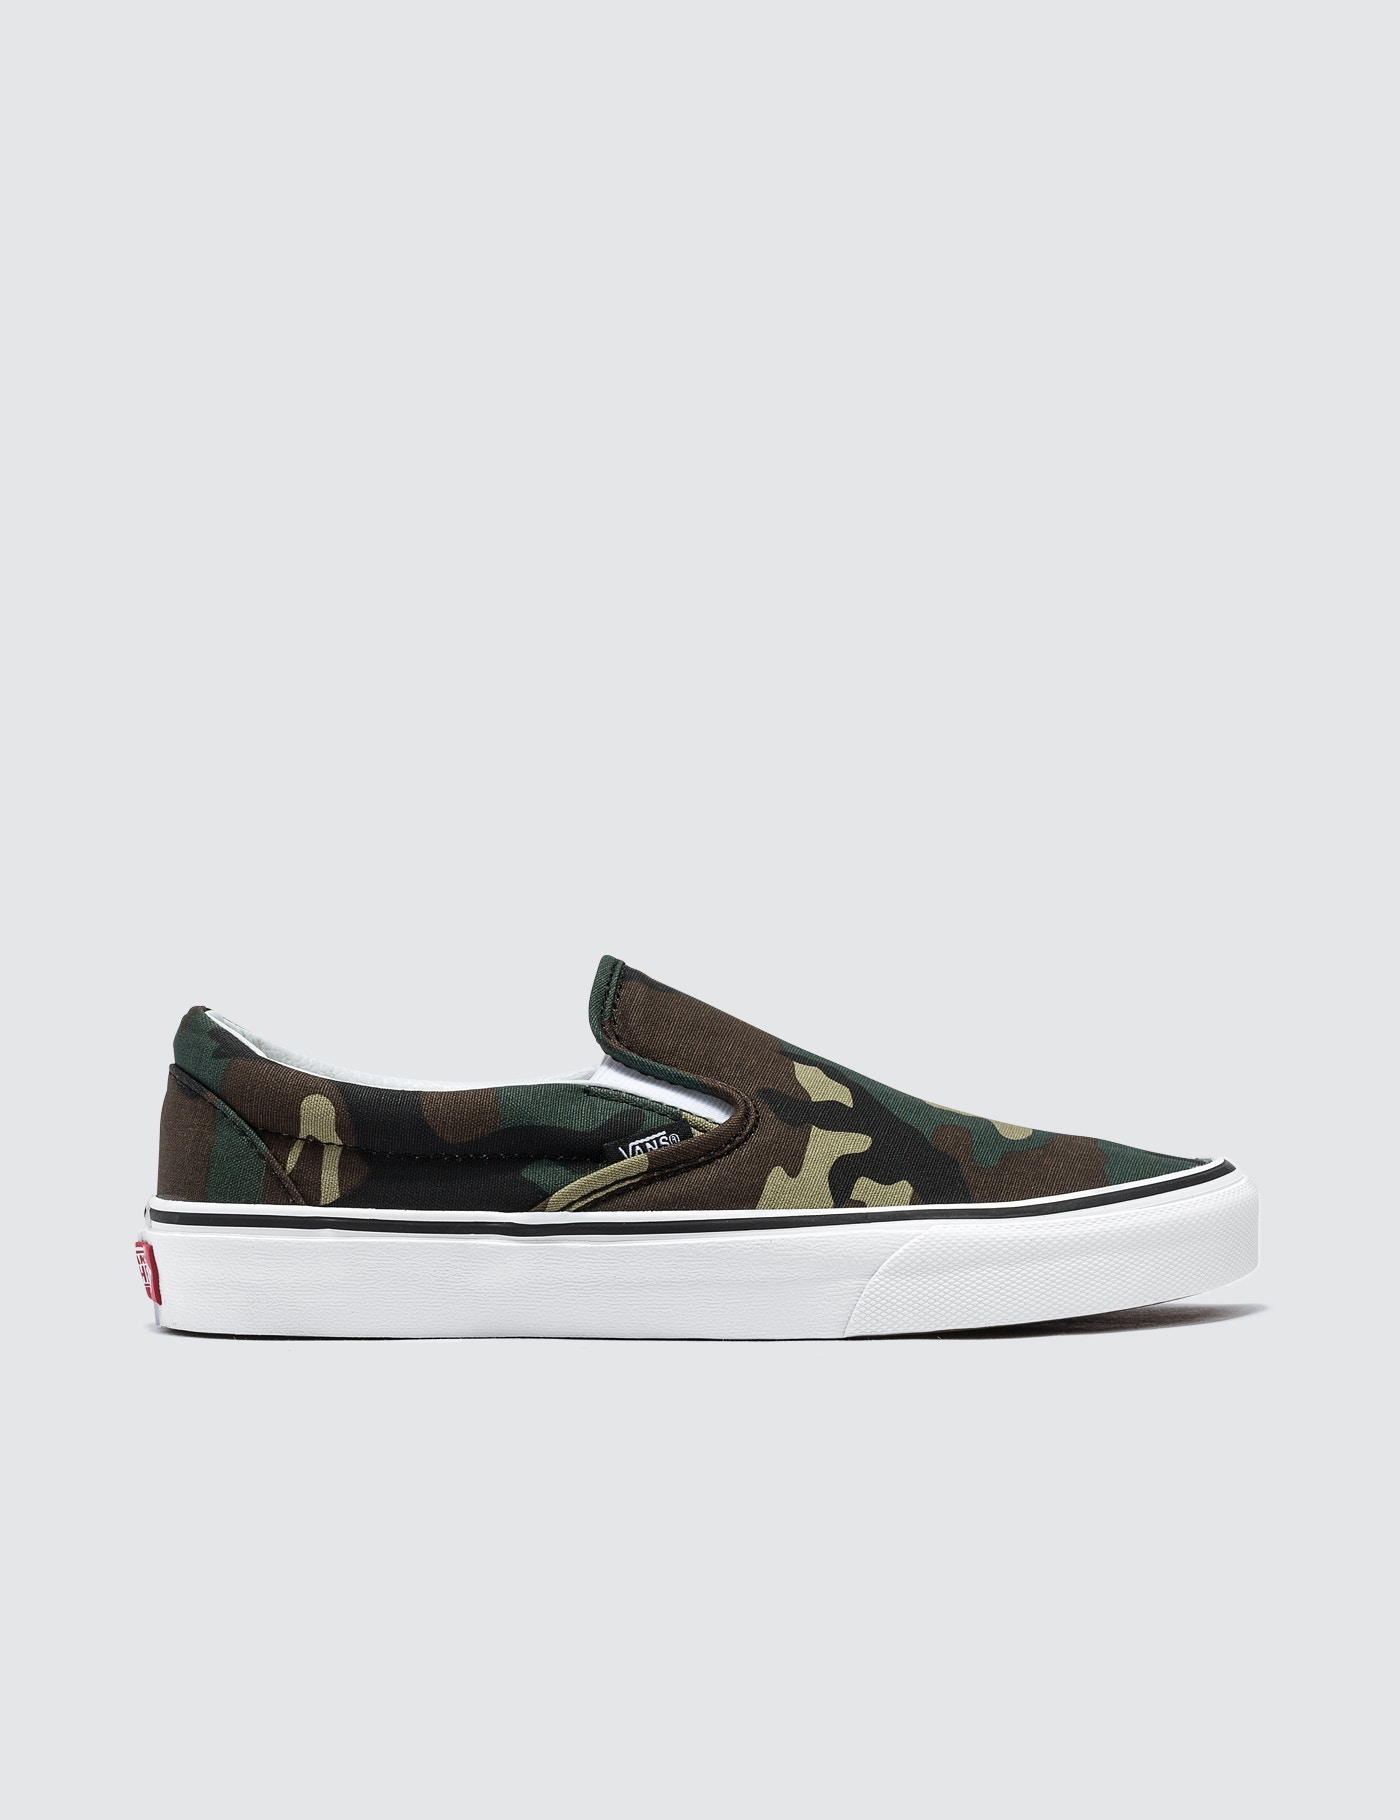 3cbe9d8dd3583f Buy Original Vans Classic Slip-on Camo at Indonesia